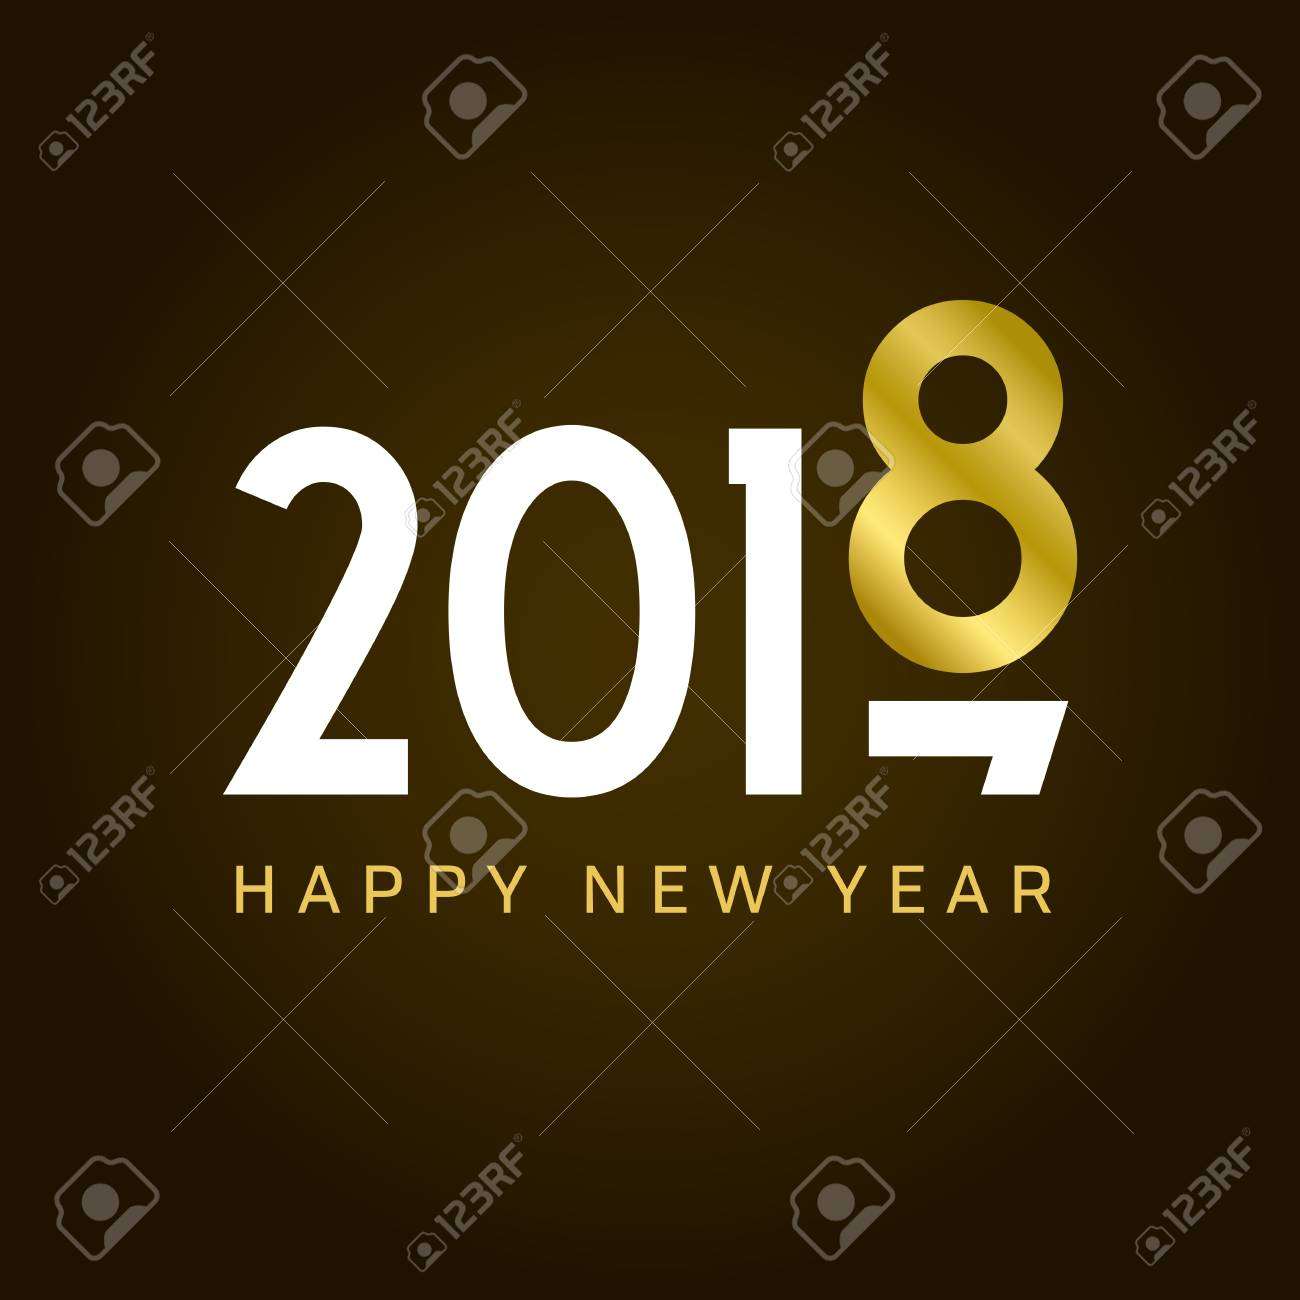 Happy new year 2018 card movement type editable vector design happy new year 2018 card movement type editable vector design stock vector m4hsunfo